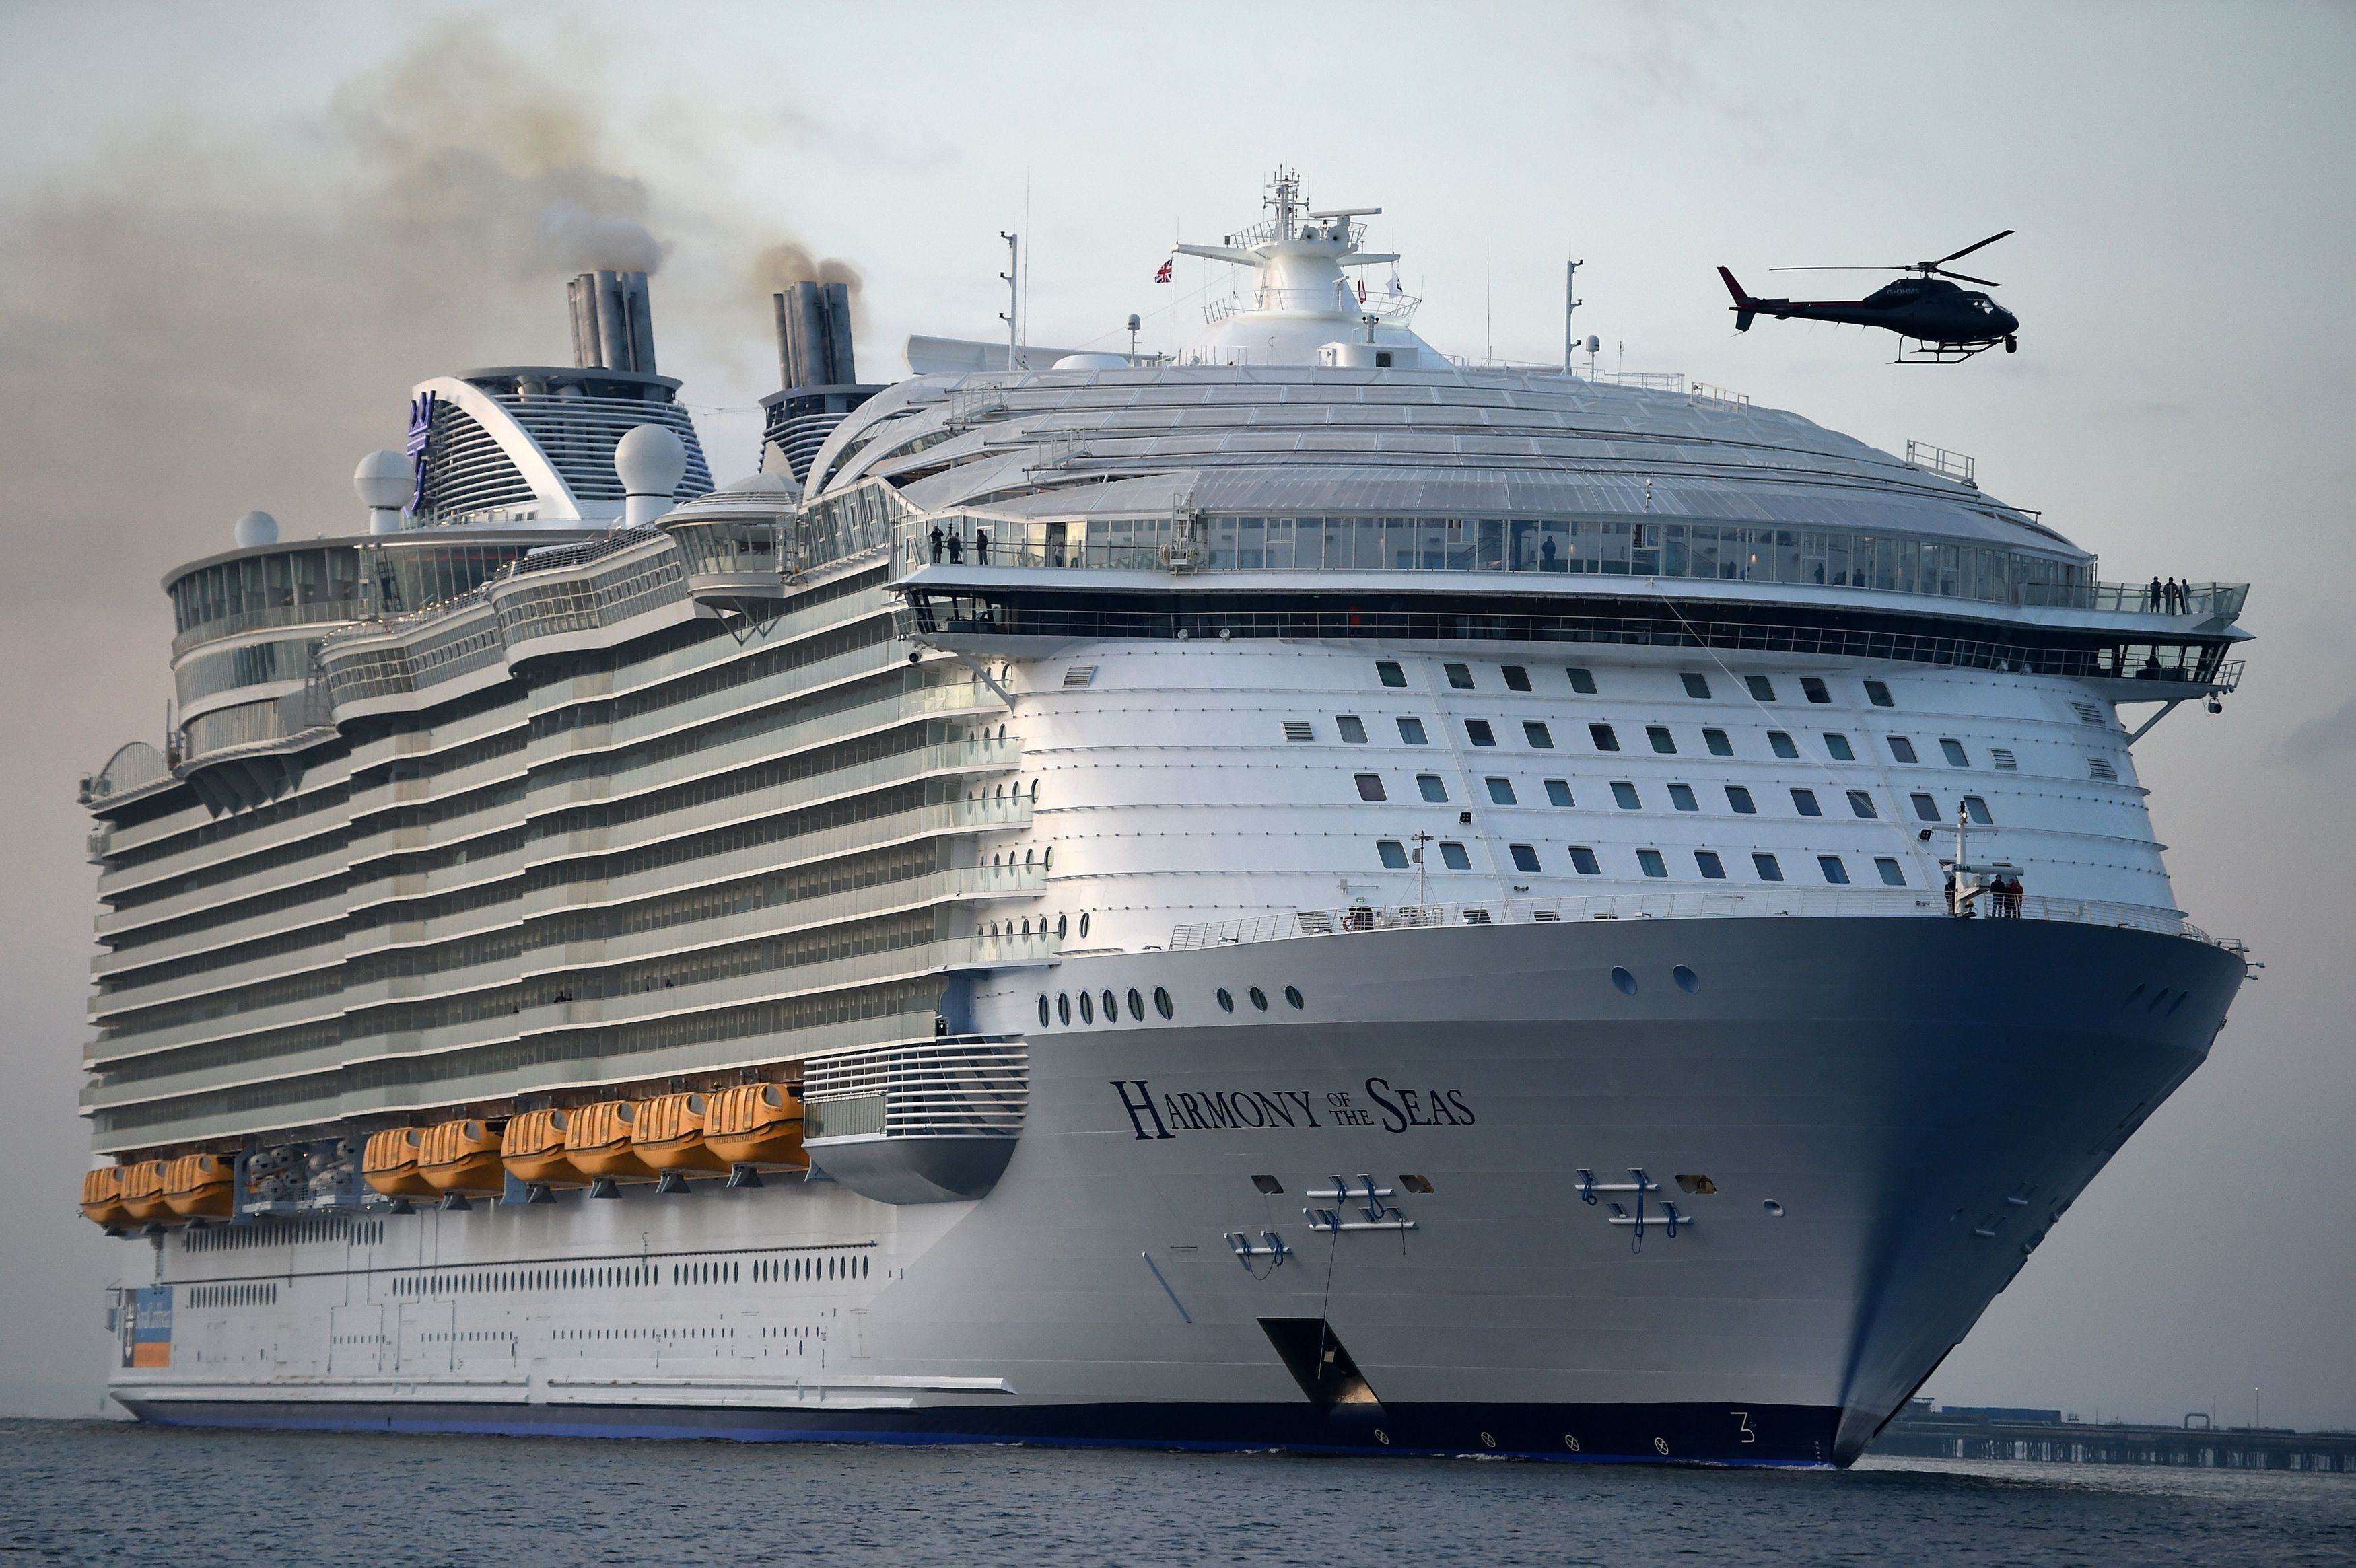 British Cruise Ship Entertainer Missing Since Christmas Day Off Coast Of Puerto